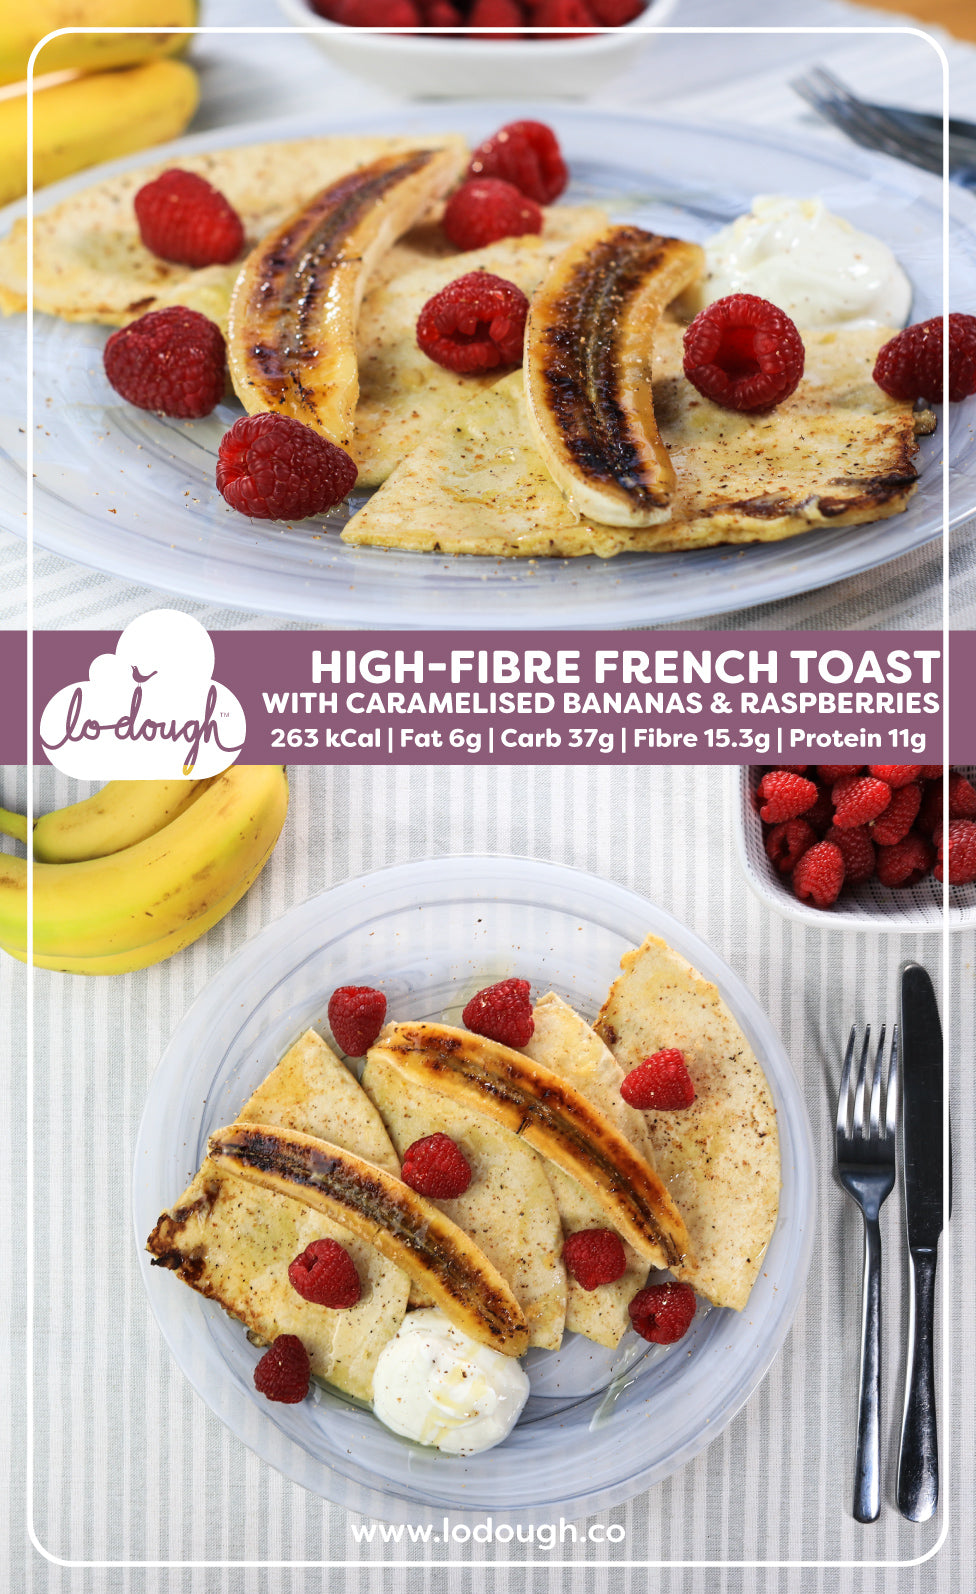 High-Fibre French Toast